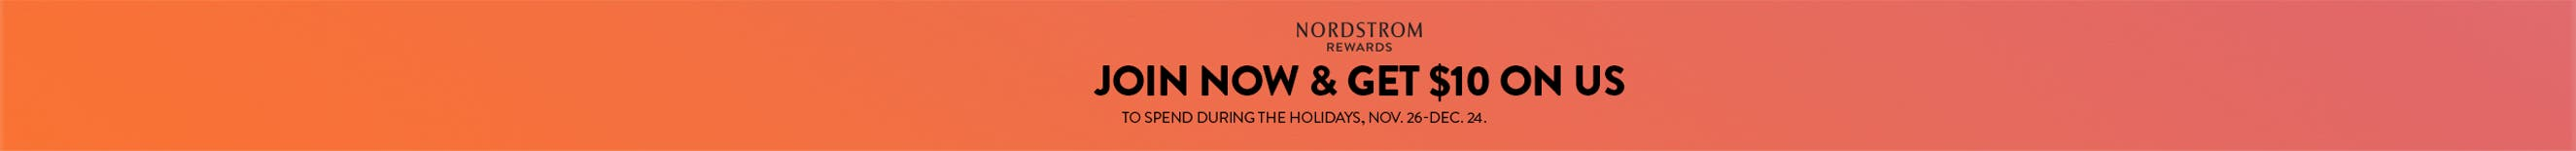 JOIN NOW & GET $10 ON US TO SPEND DURING THE HOLIDAYS, NOV. 26-DEC. 24